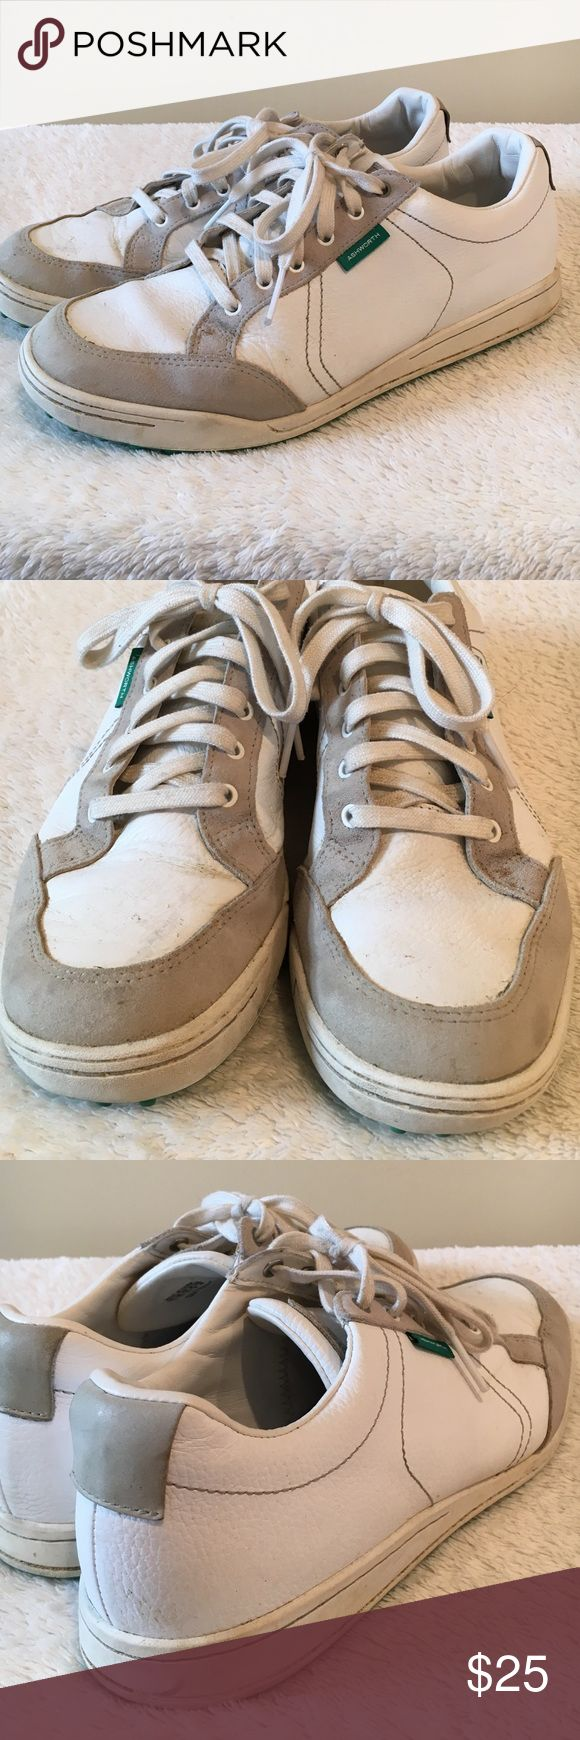 Ashworth golf sneakers 🗽Good condition. Just need a cleaning. Gold shoes with spikes on bottom. Ashworth Shoes Athletic Shoes